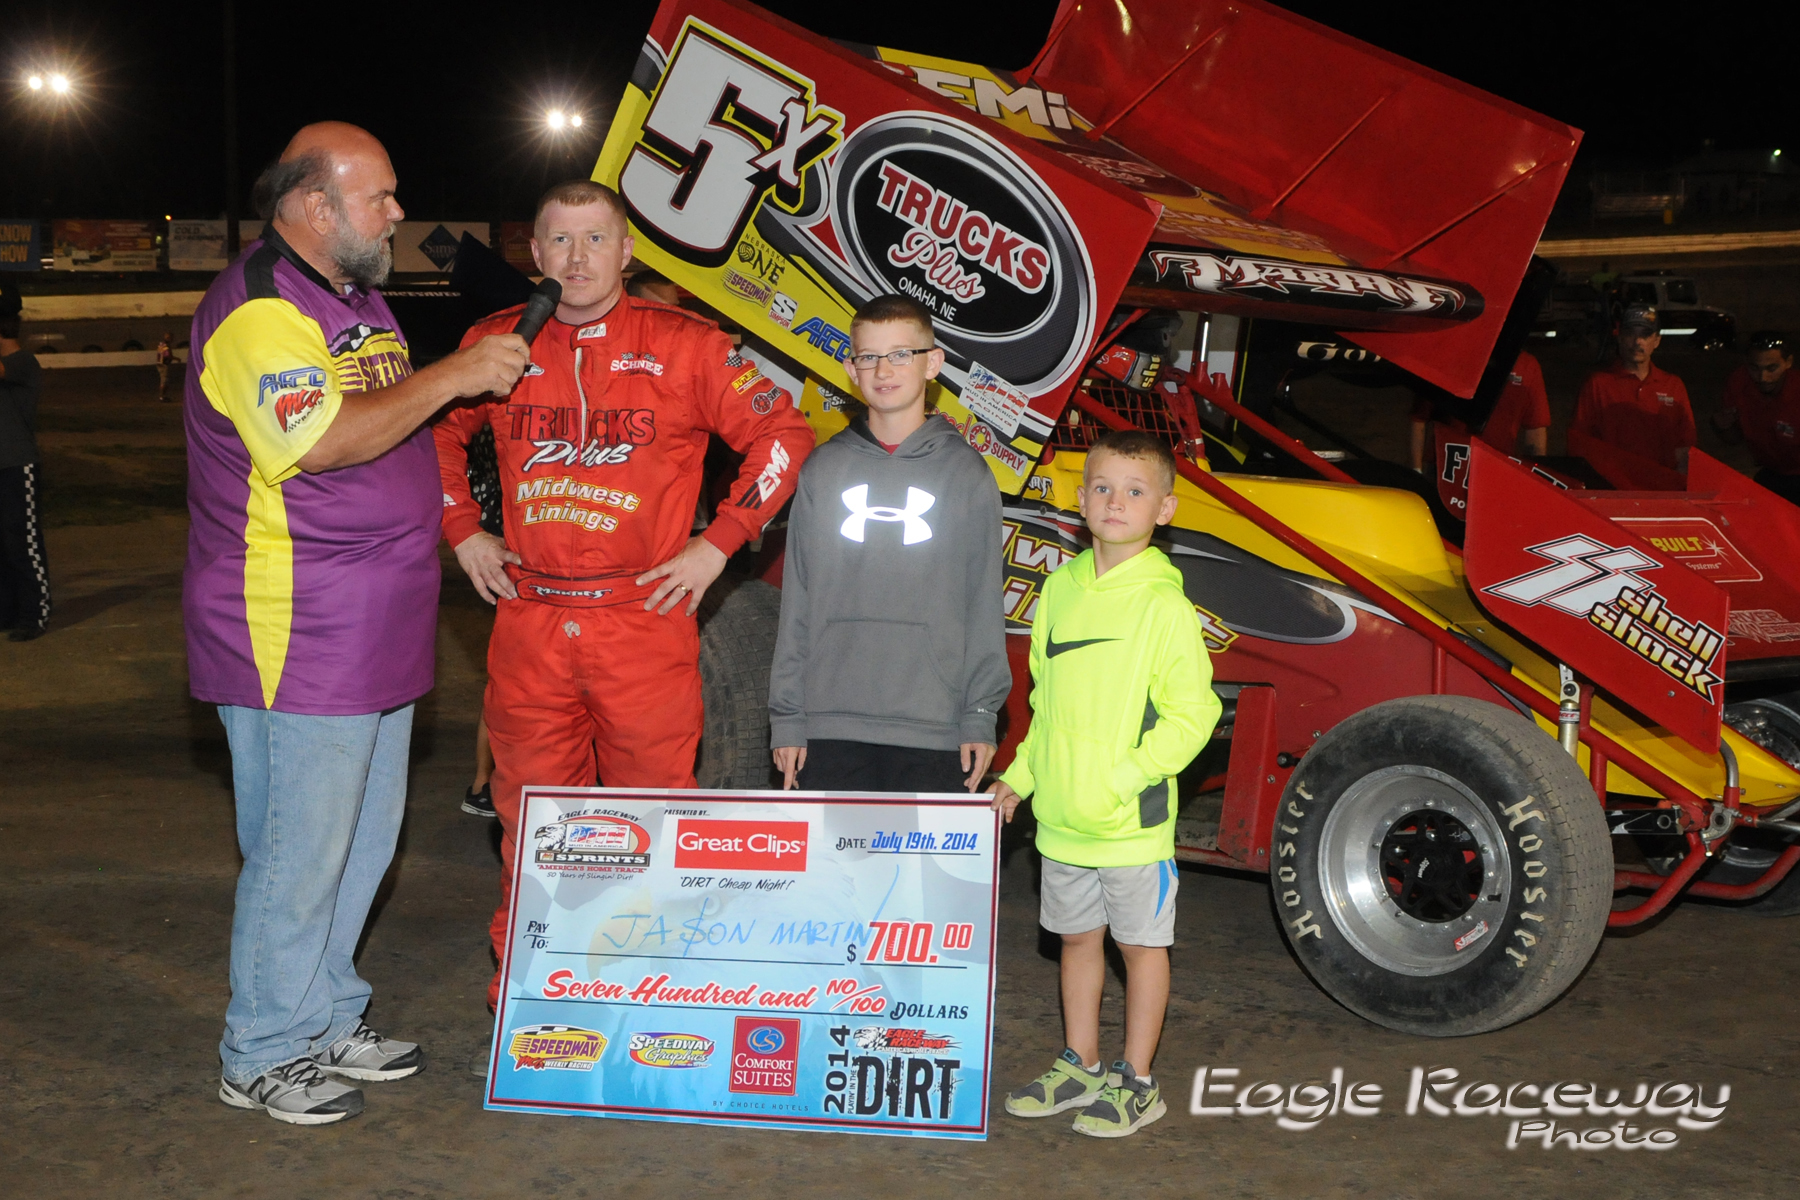 eagle-07-19-14-406-stan-cisar-jr-interviewing-jason-martin-with-family-joeorthphotos